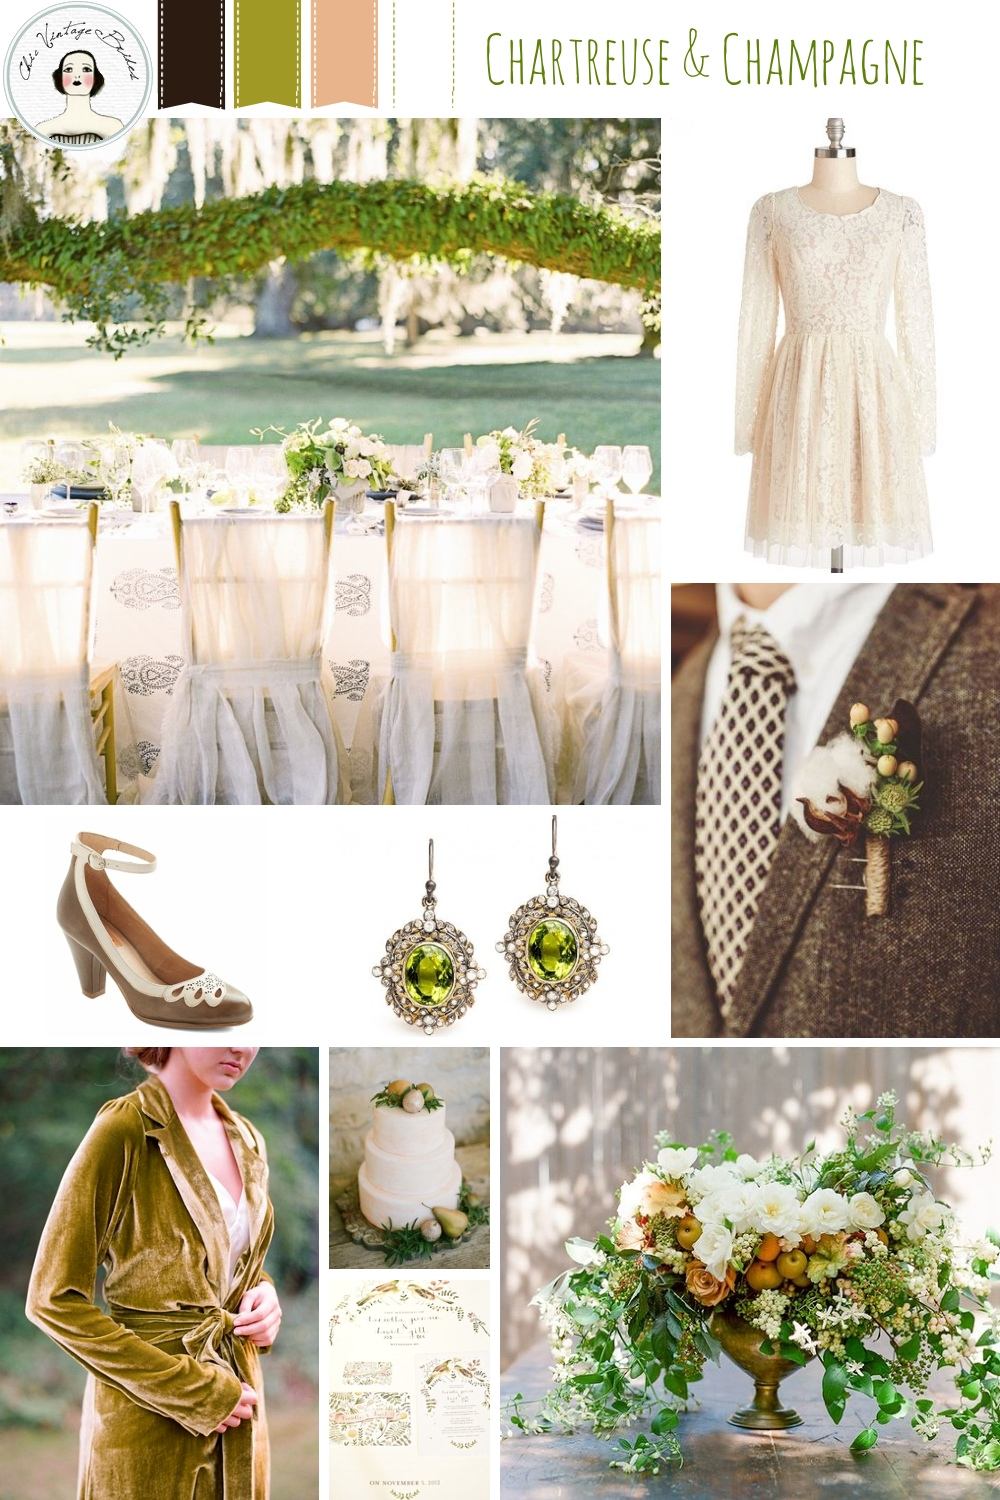 Chartreuse & Champagne Autumn Wedding Inspiration